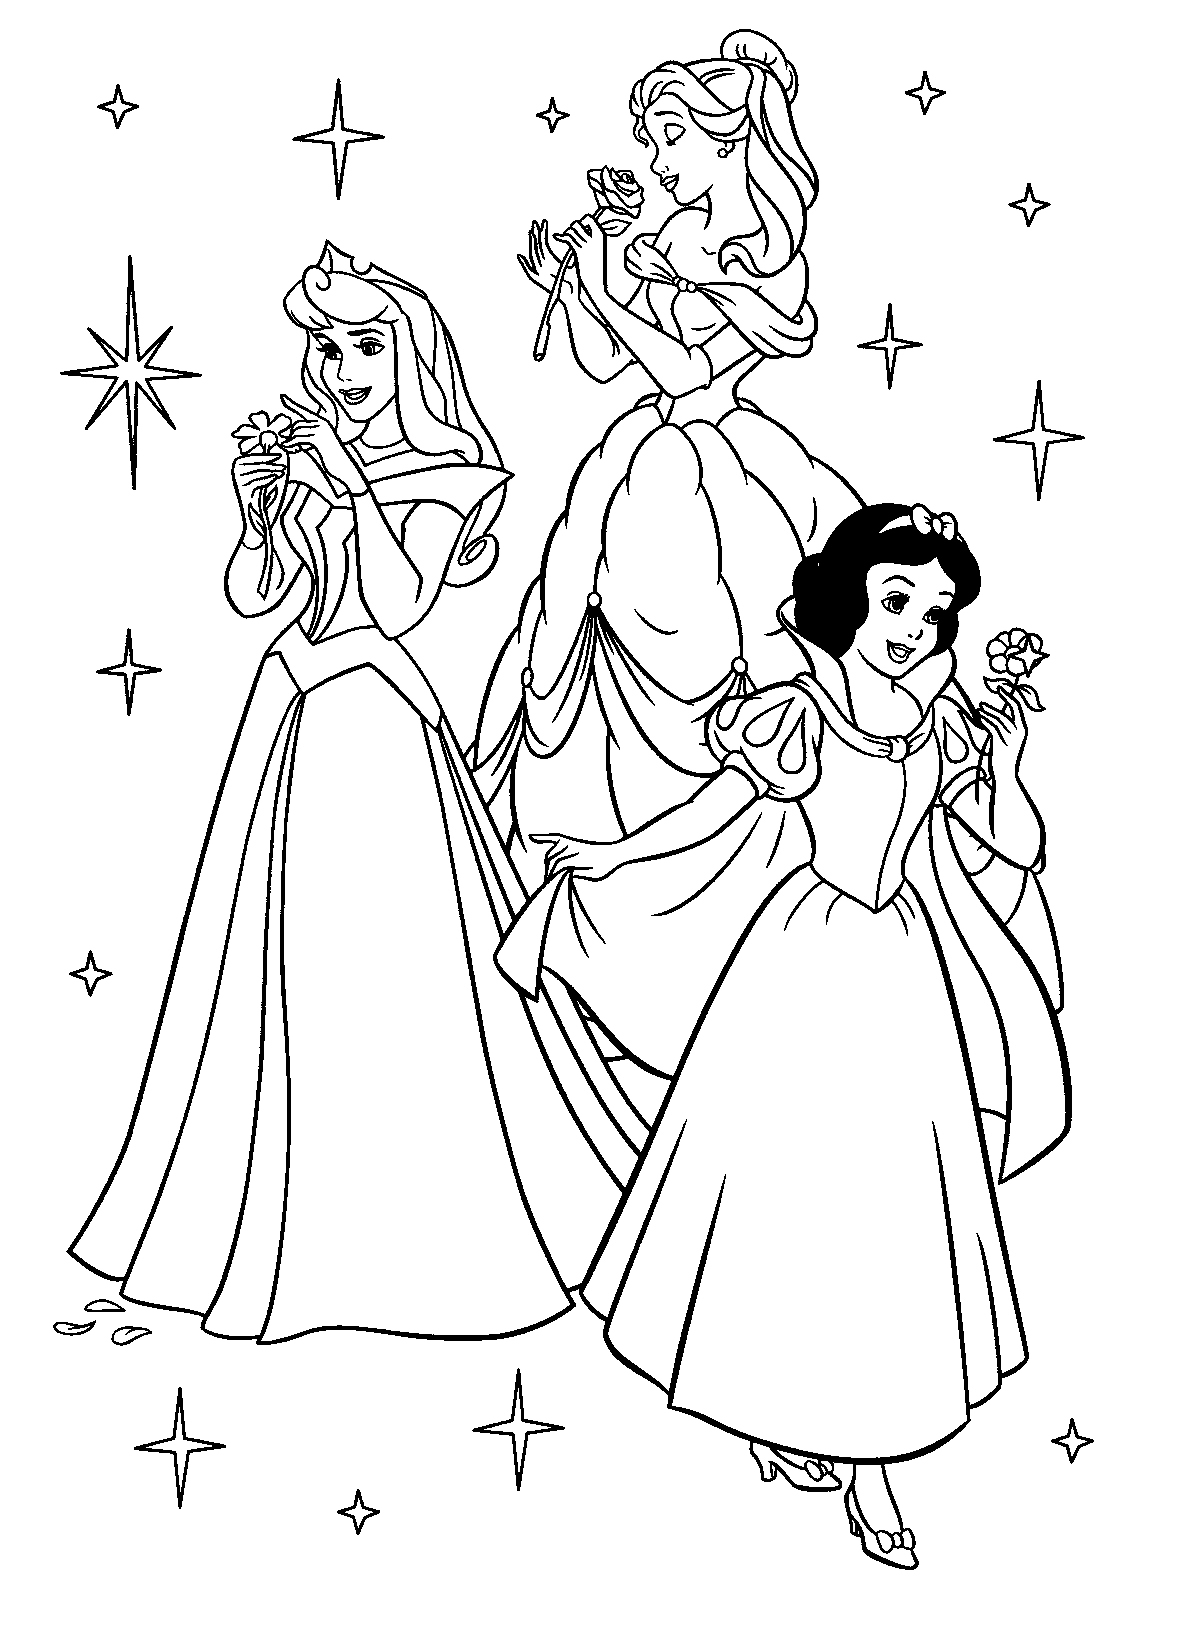 Impertinent image intended for free printable princess coloring pages